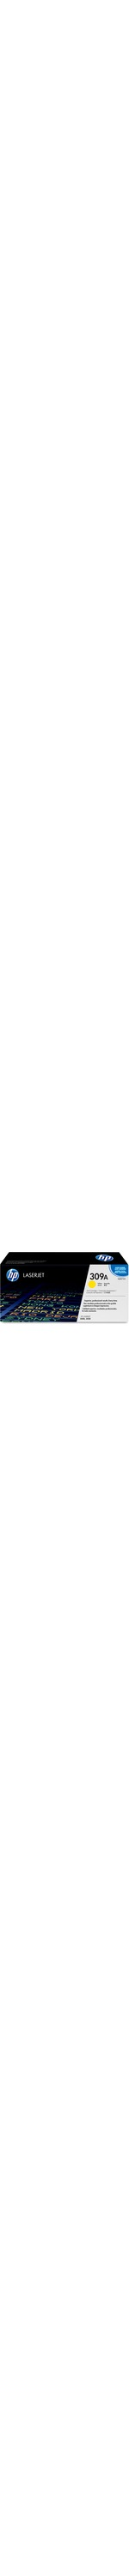 HP 309A Toner Cartridge - Yellow - Laser - High Yield - 4000 Page - 1 Each